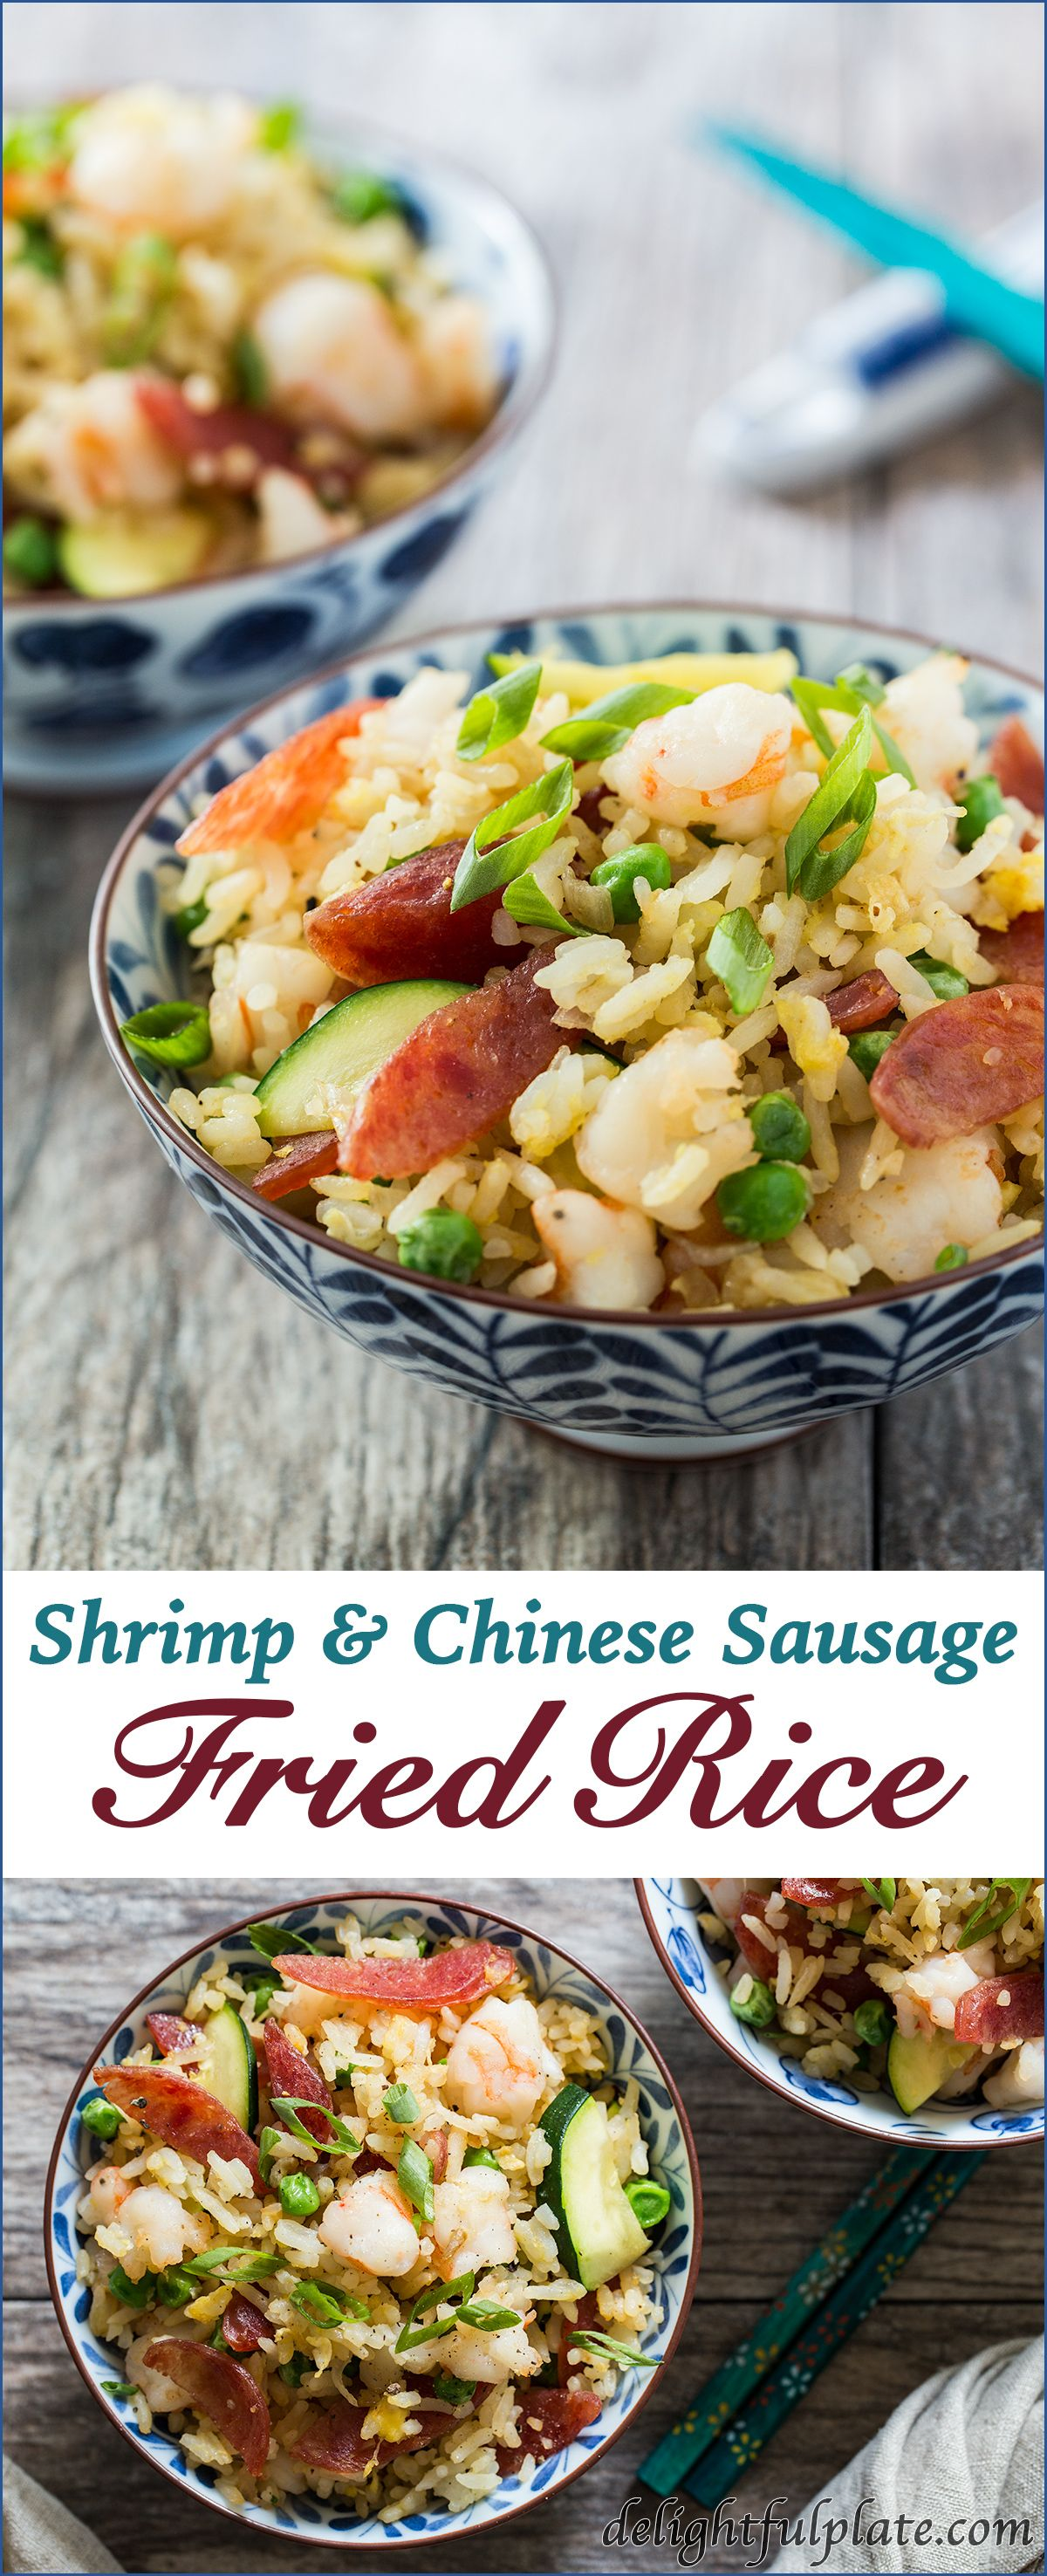 This Shrimp and Chinese Sausage Fried Rice comes together in 20 minutes. Recipe and tips for making fried rice are on delightfulplate.com.